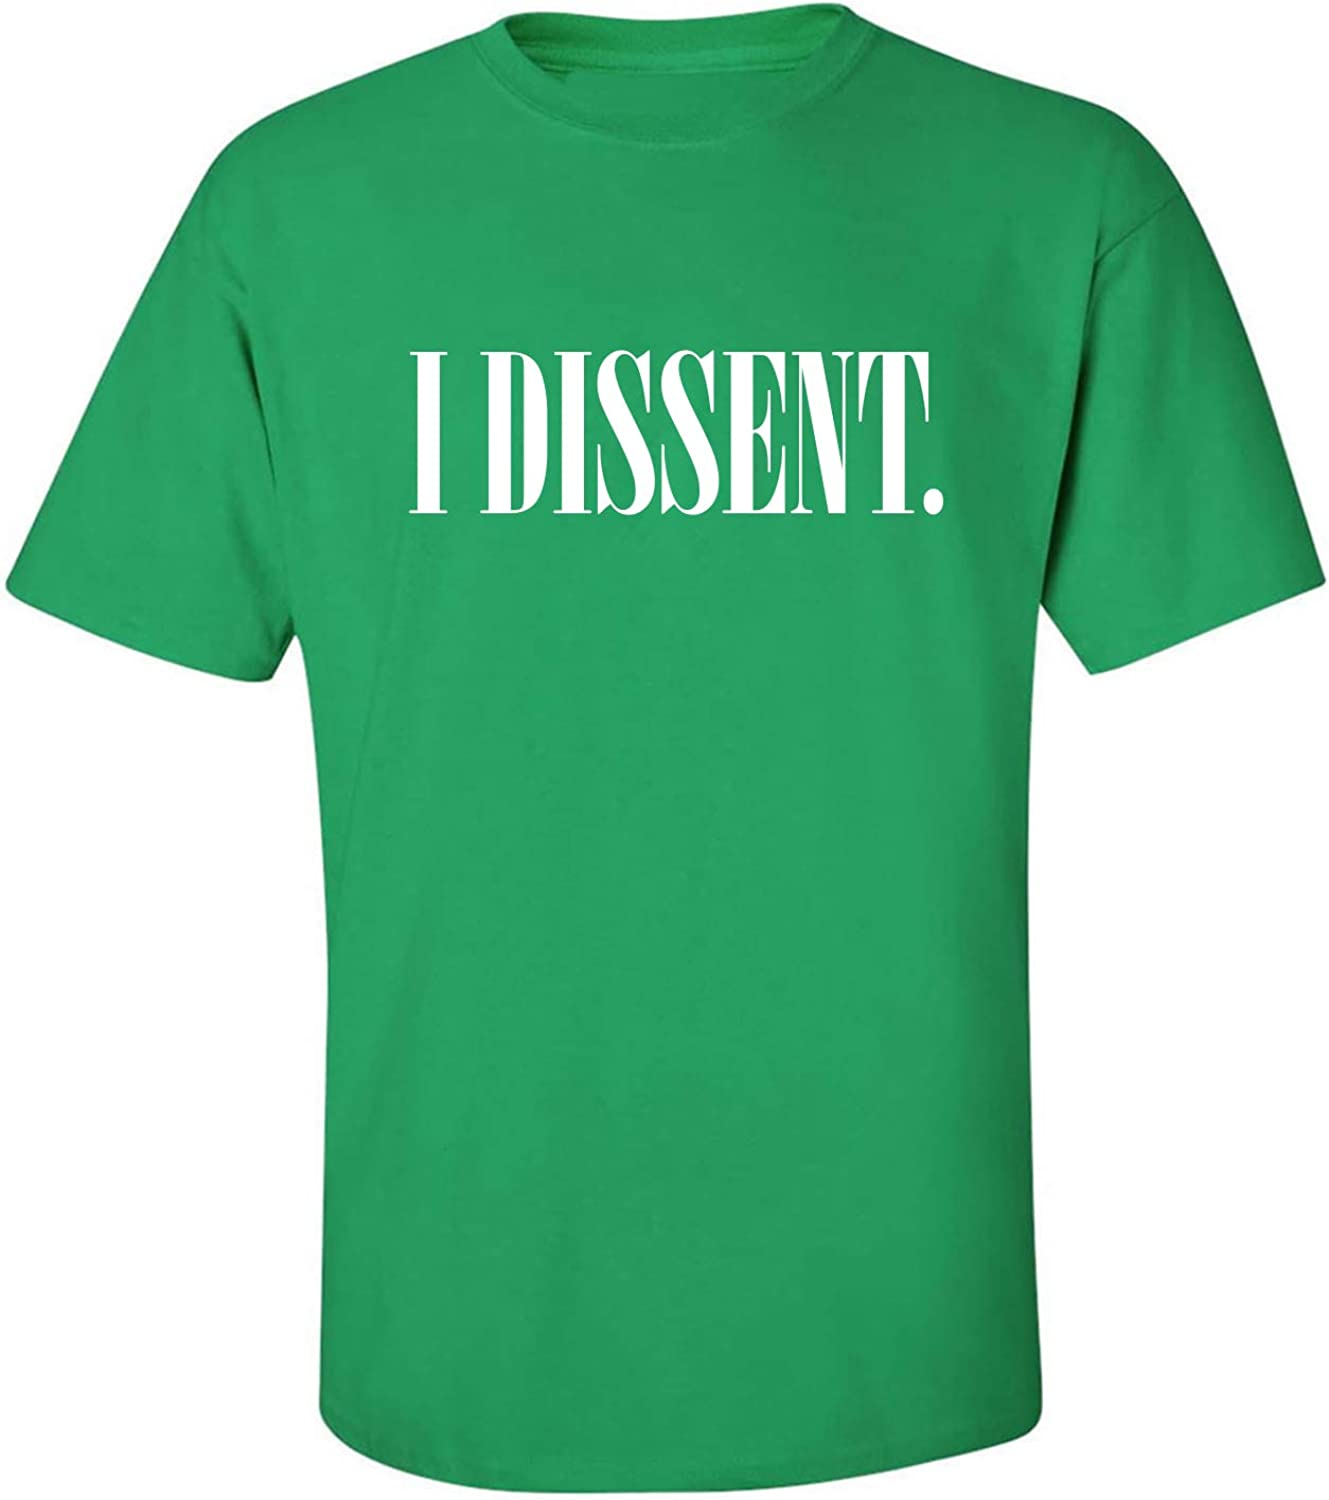 I Dissent Adult T-Shirt in Kelly Green - XXXX-Large